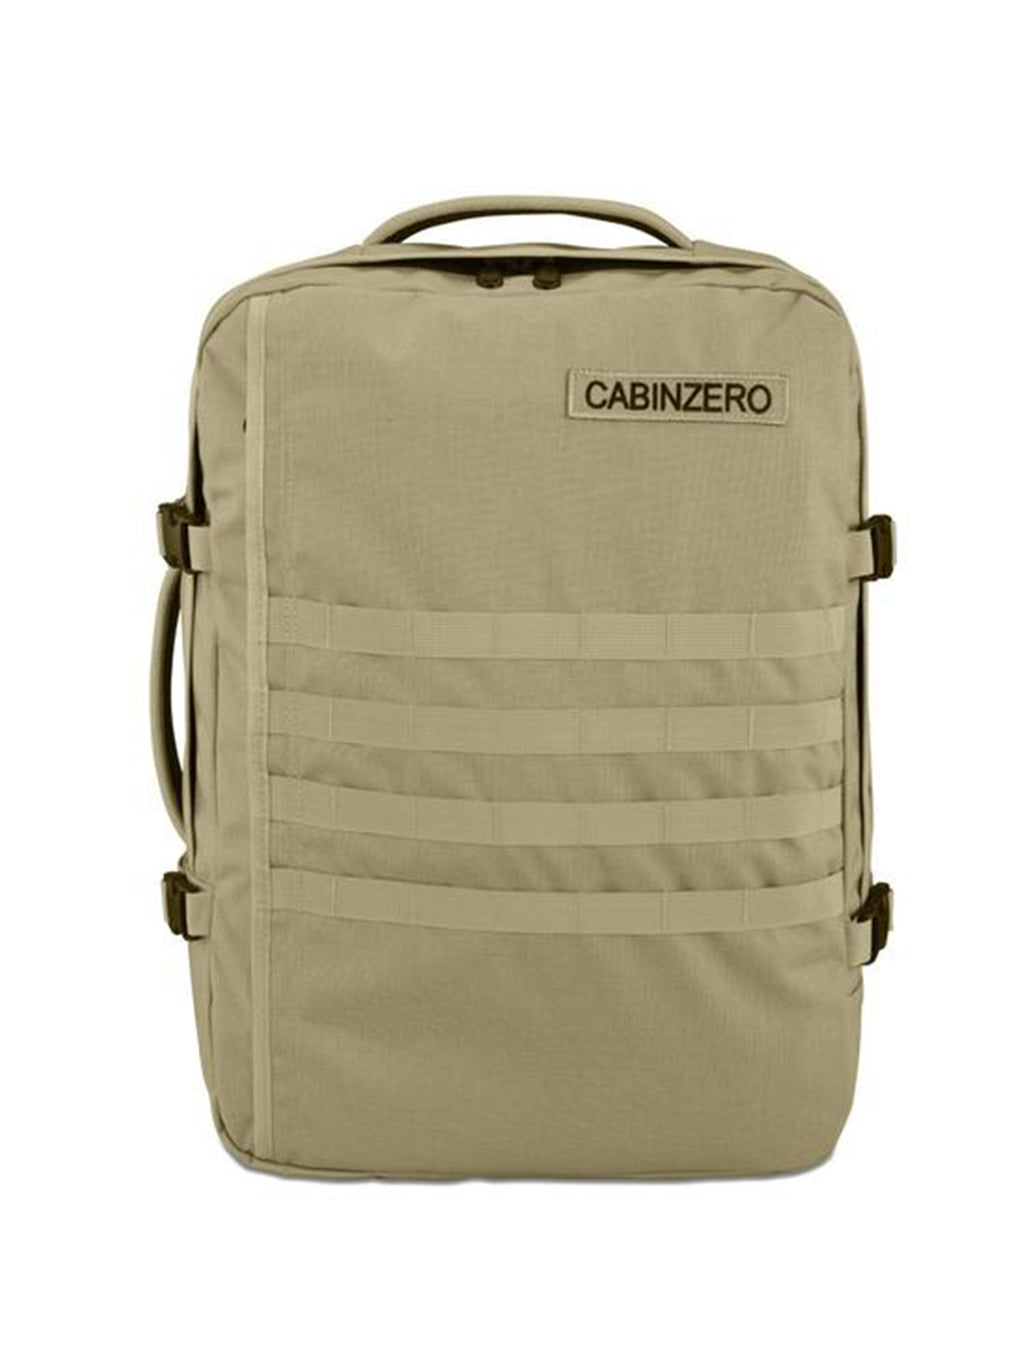 Cabinzero Military 44L in Light Khaki Color - This Is For Him